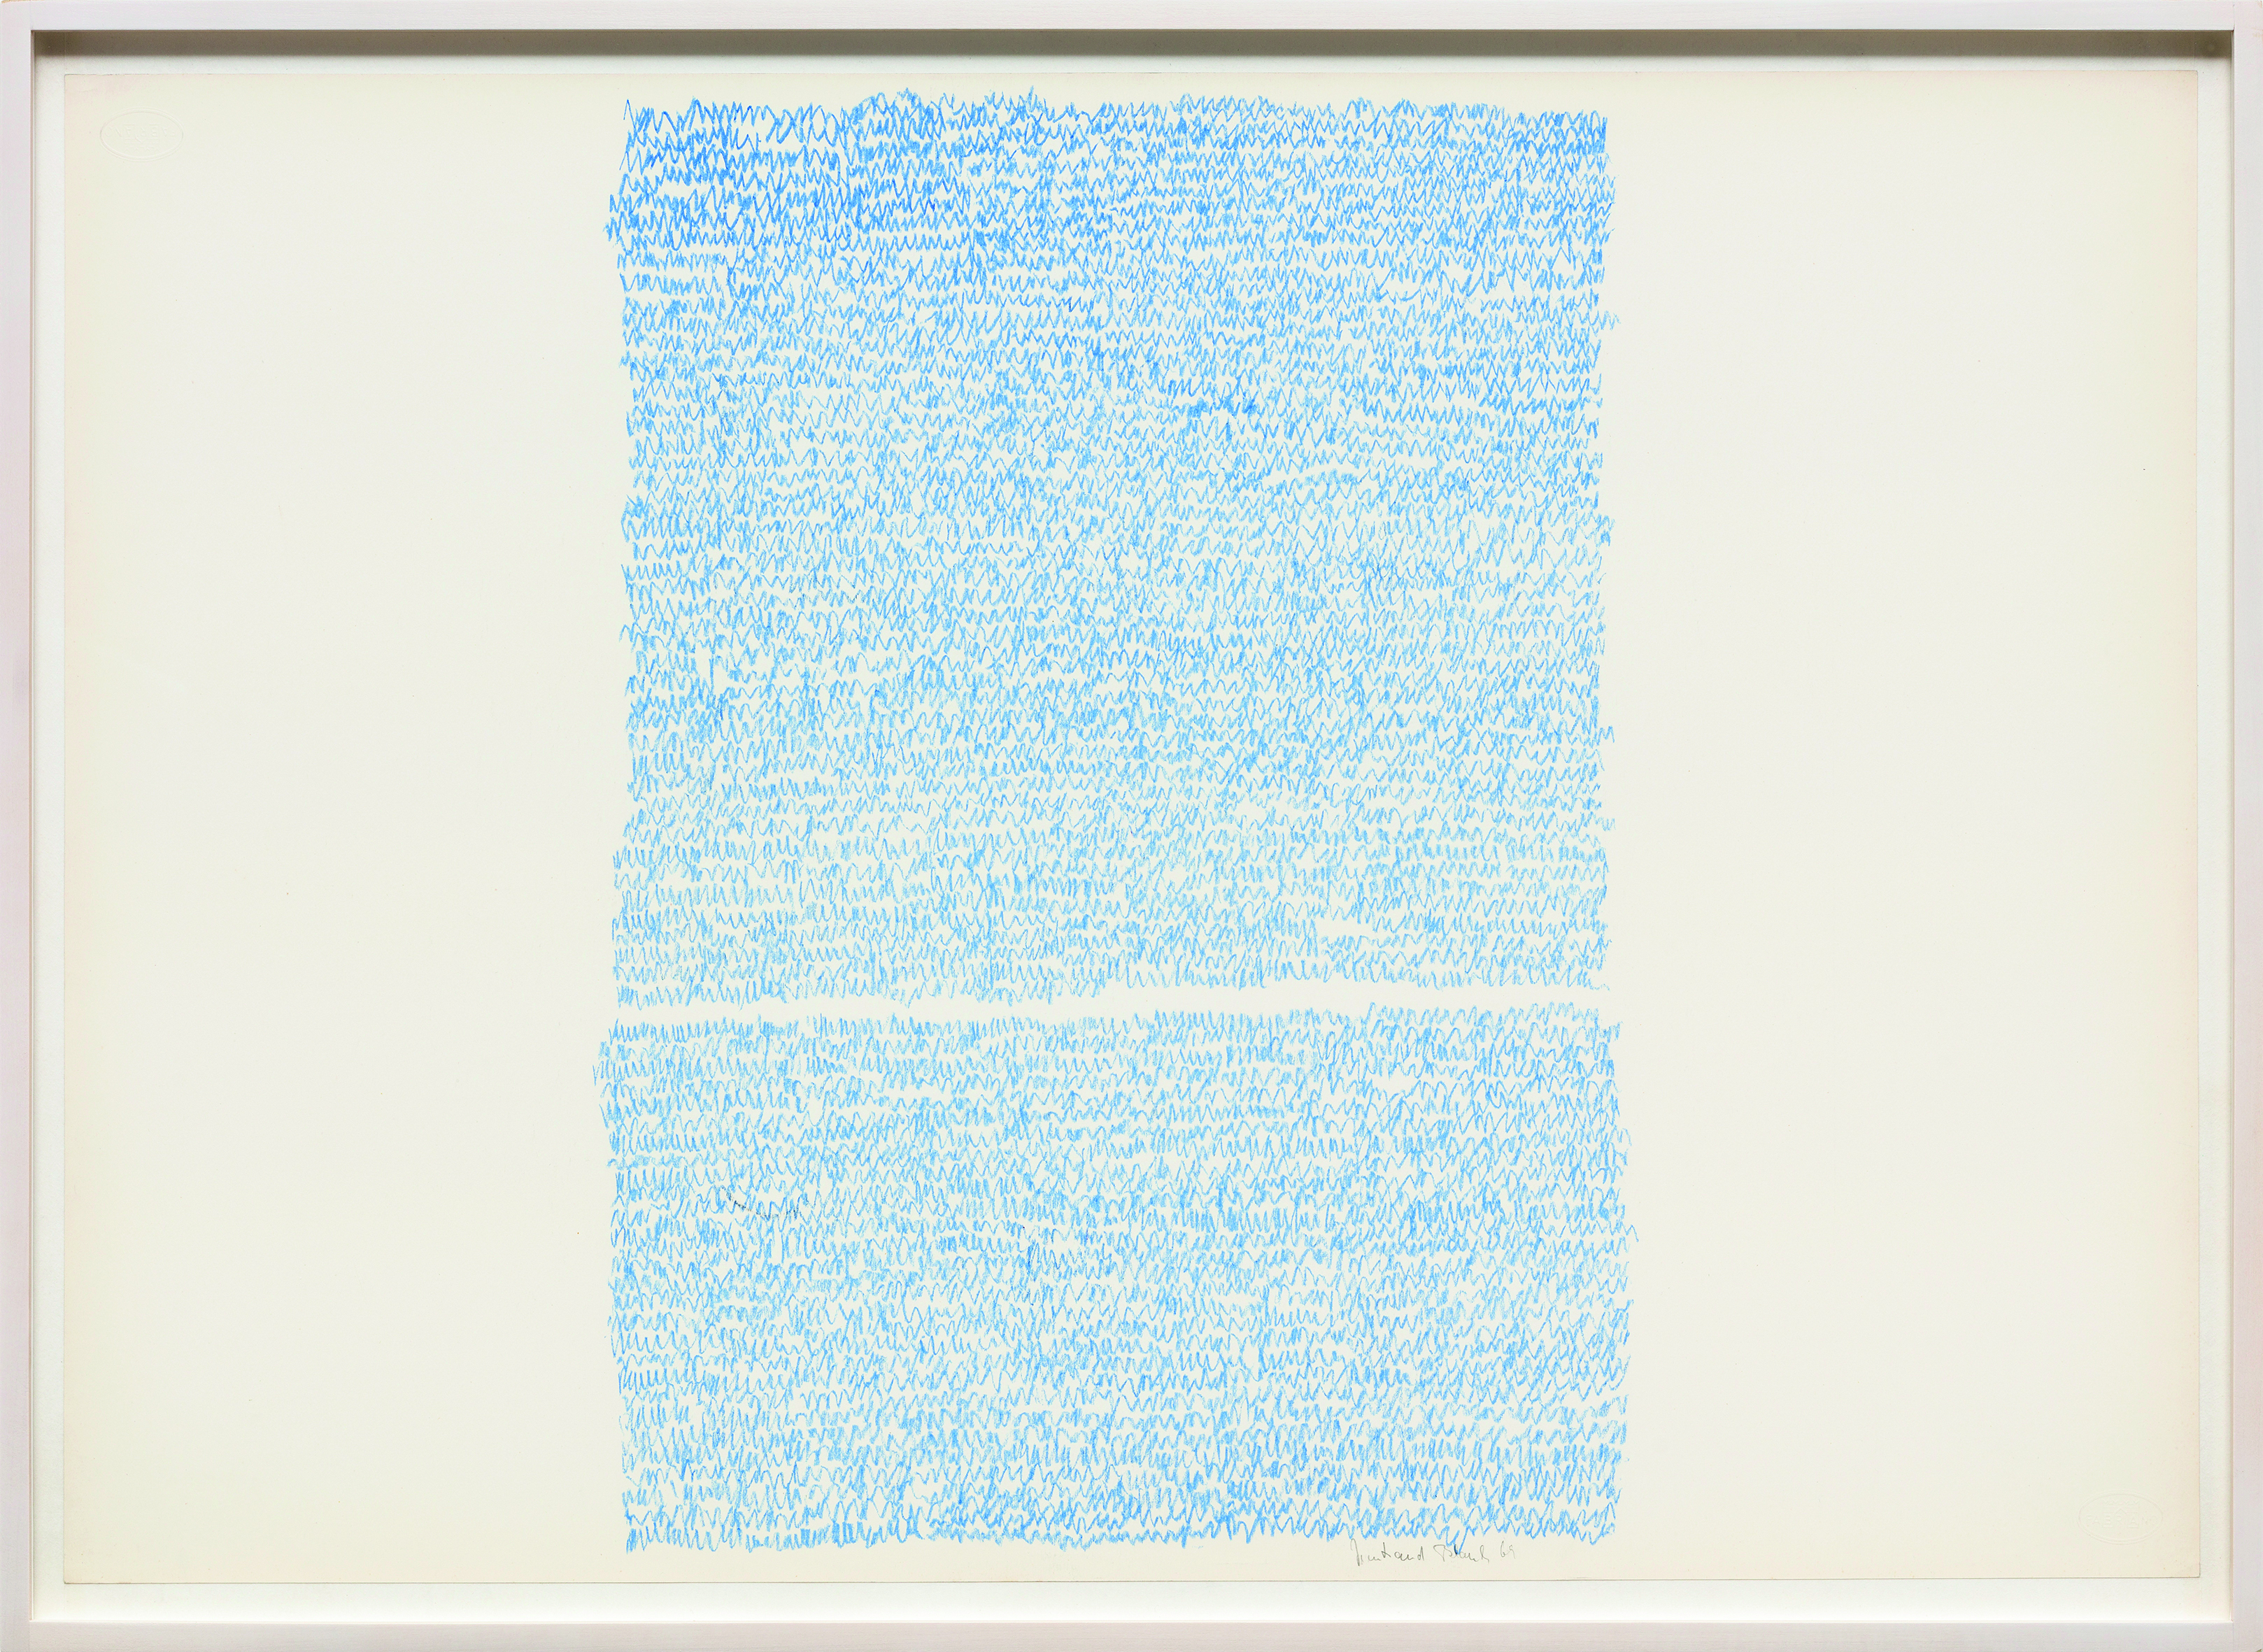 Irma Blank, Eigenschriften, 1969, pastello su carta pastel on paper, cm.50x7(ph.C.Favero) Courtesy the artist and P420, Bologna